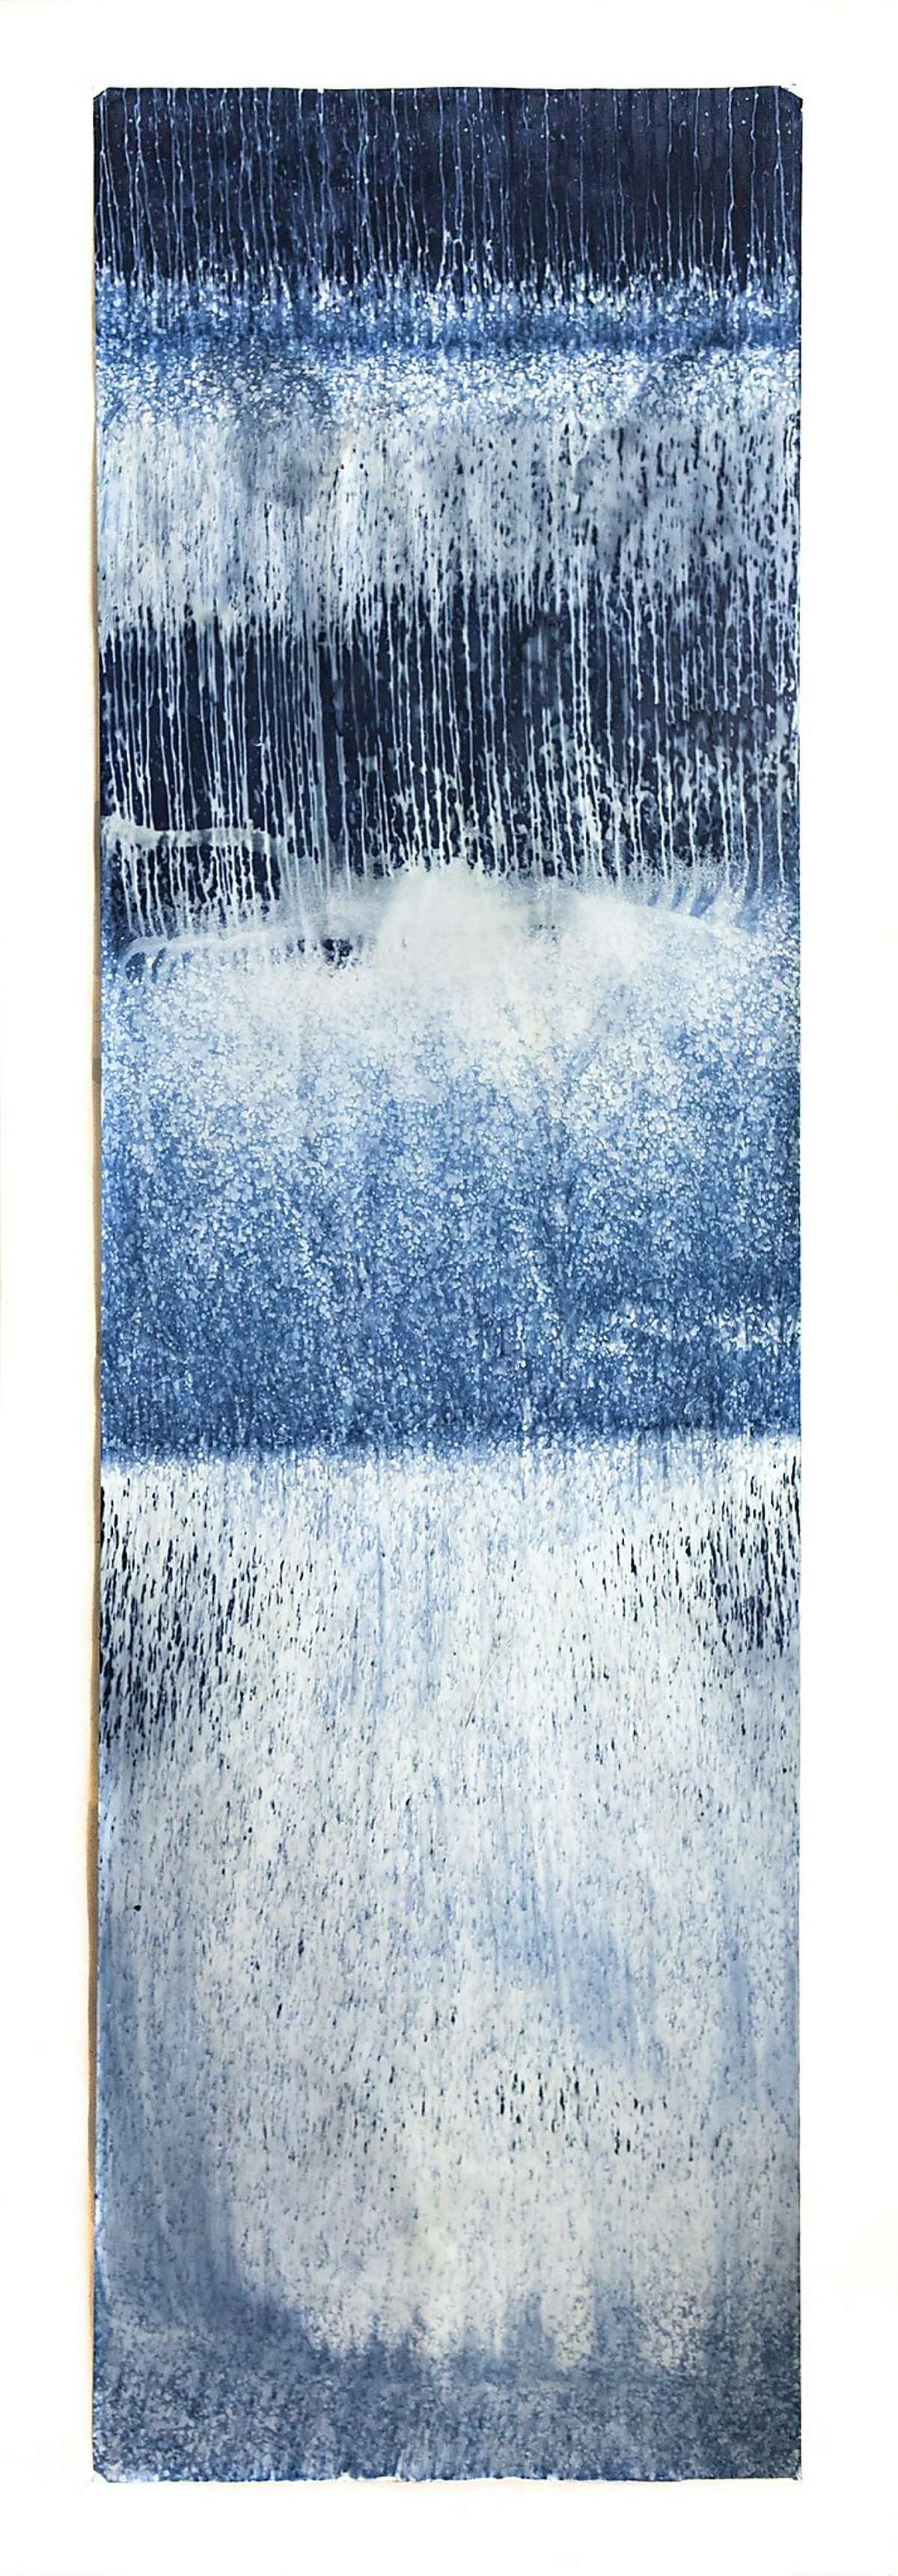 """Meghann Riepenhoff, from """"Littoral Drift."""" A cyanotype 12 feet in height by 42 inches wide."""